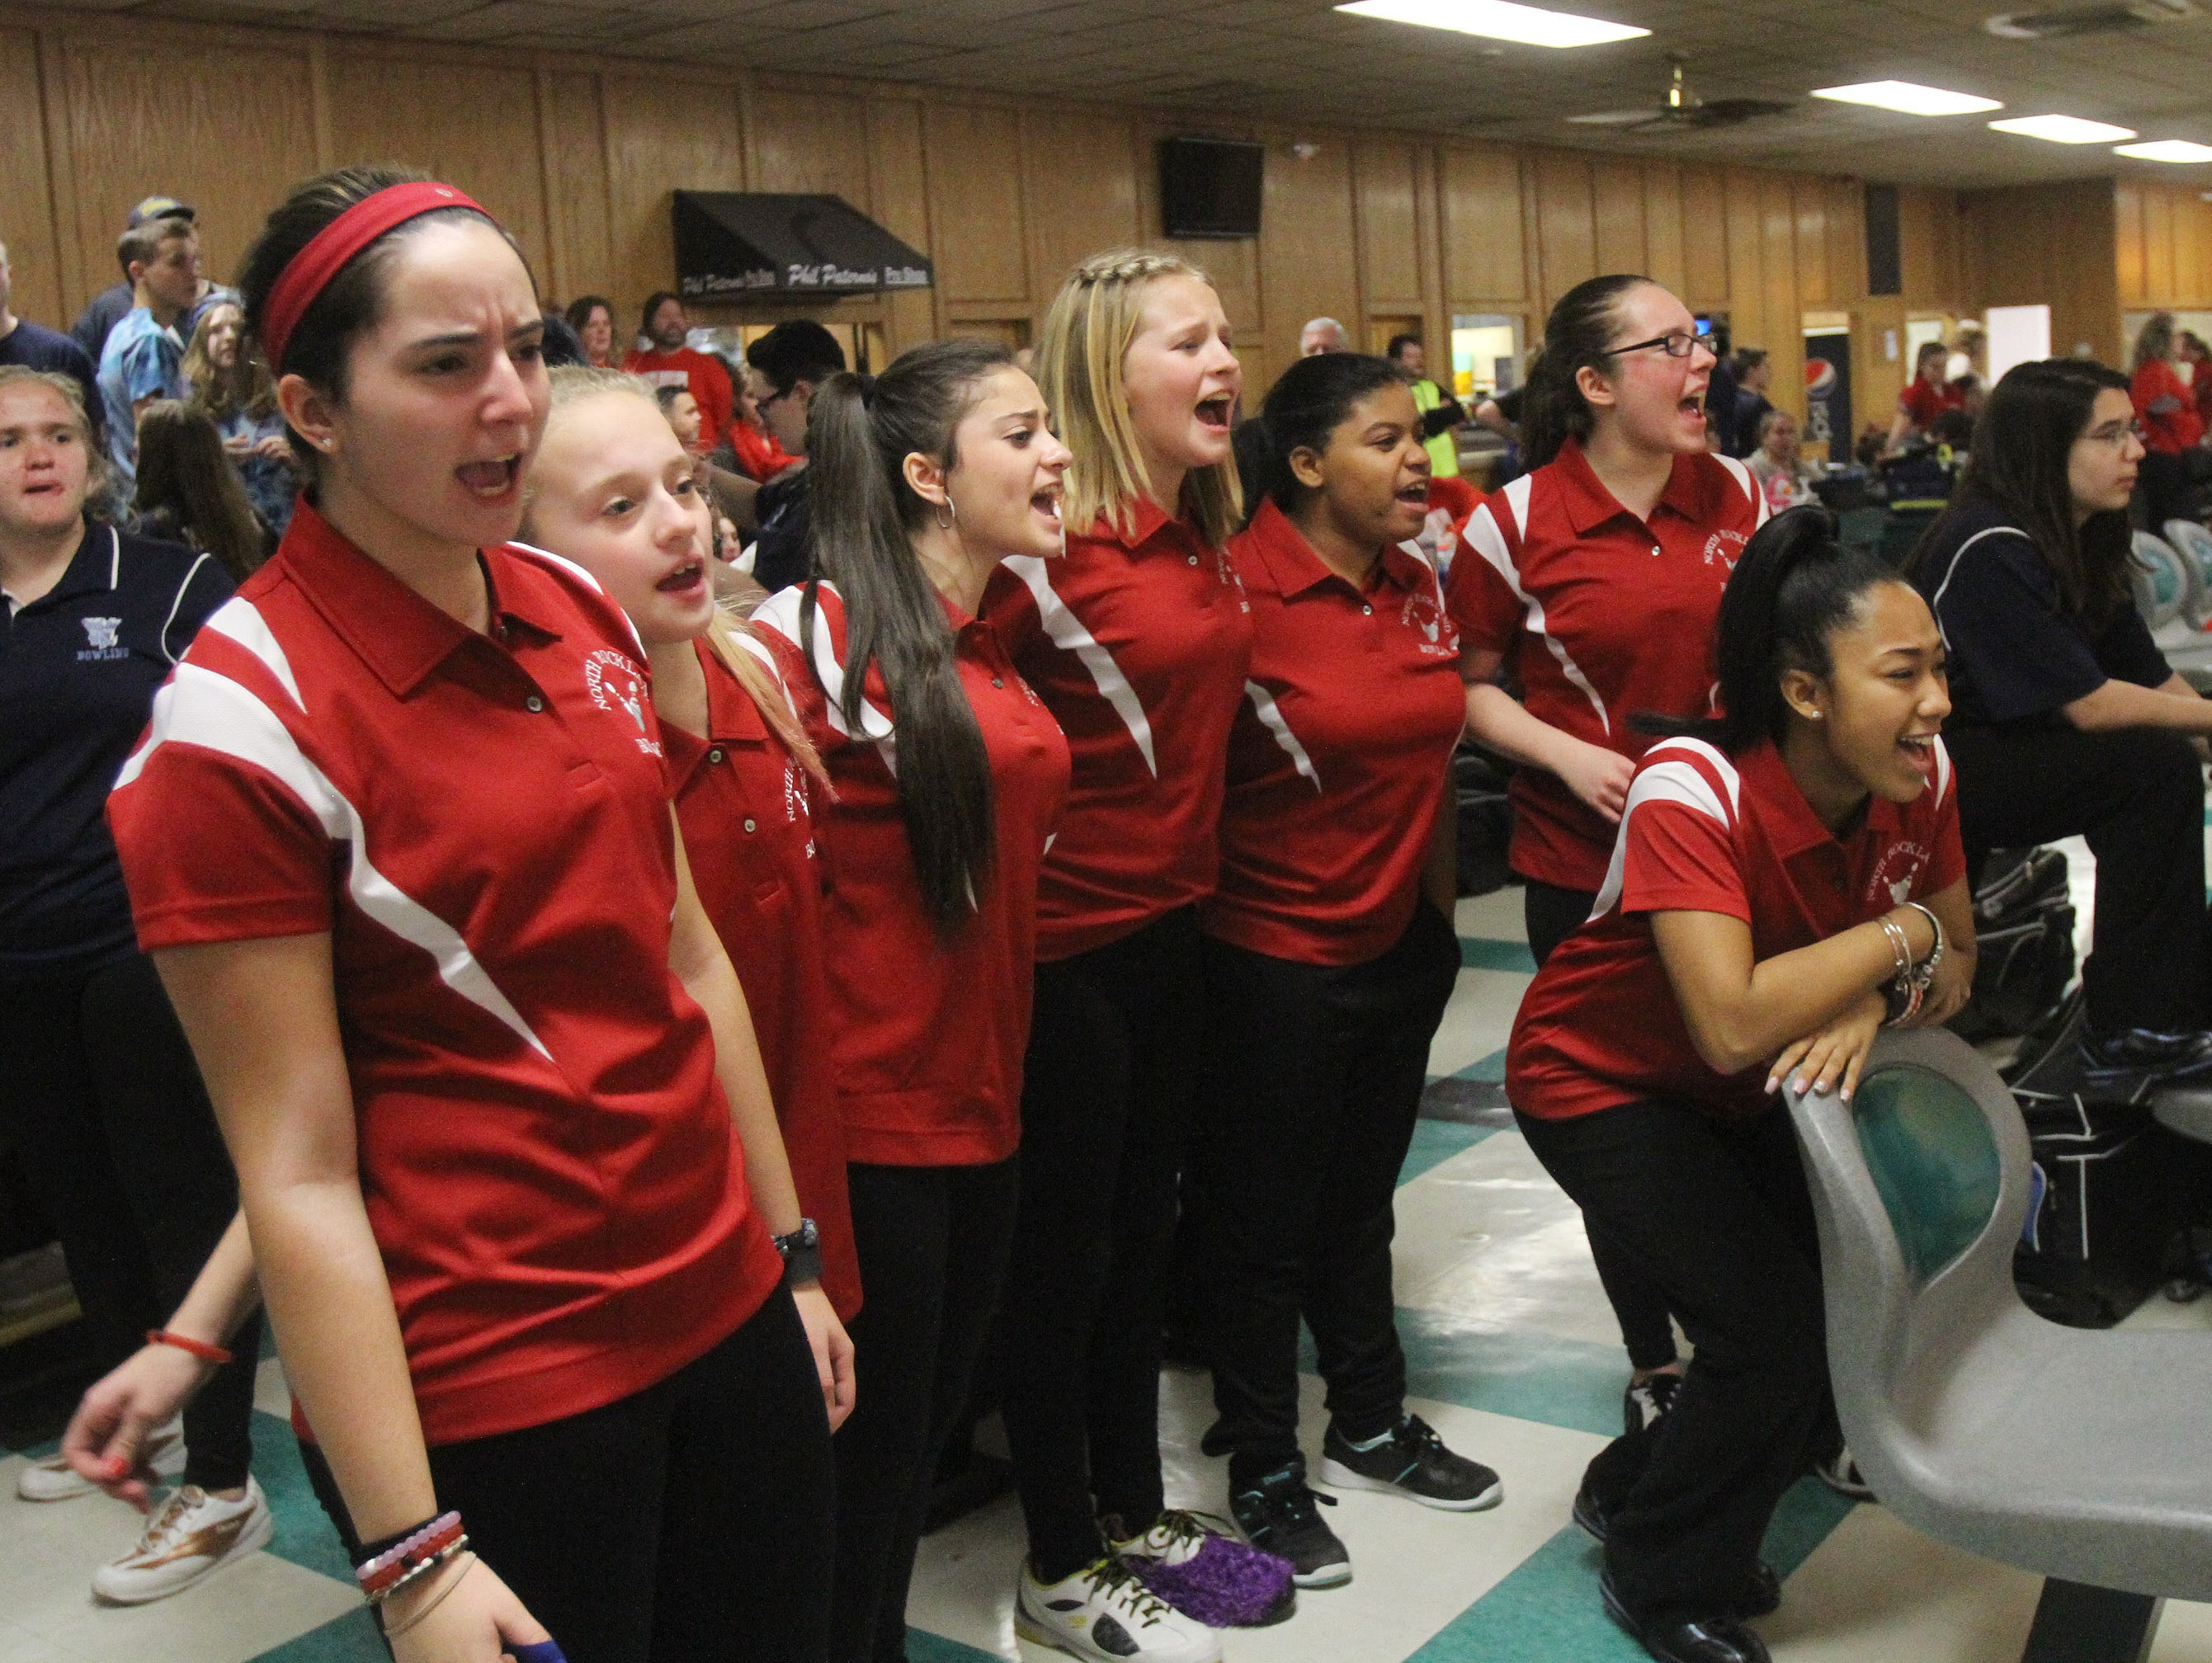 North Rockland girls bowling team cheer on a teammate during the Section 1 girls bowling tournament at Fishkill Bowl Feb. 10, 2016. North Rockland went on to win the tournament.